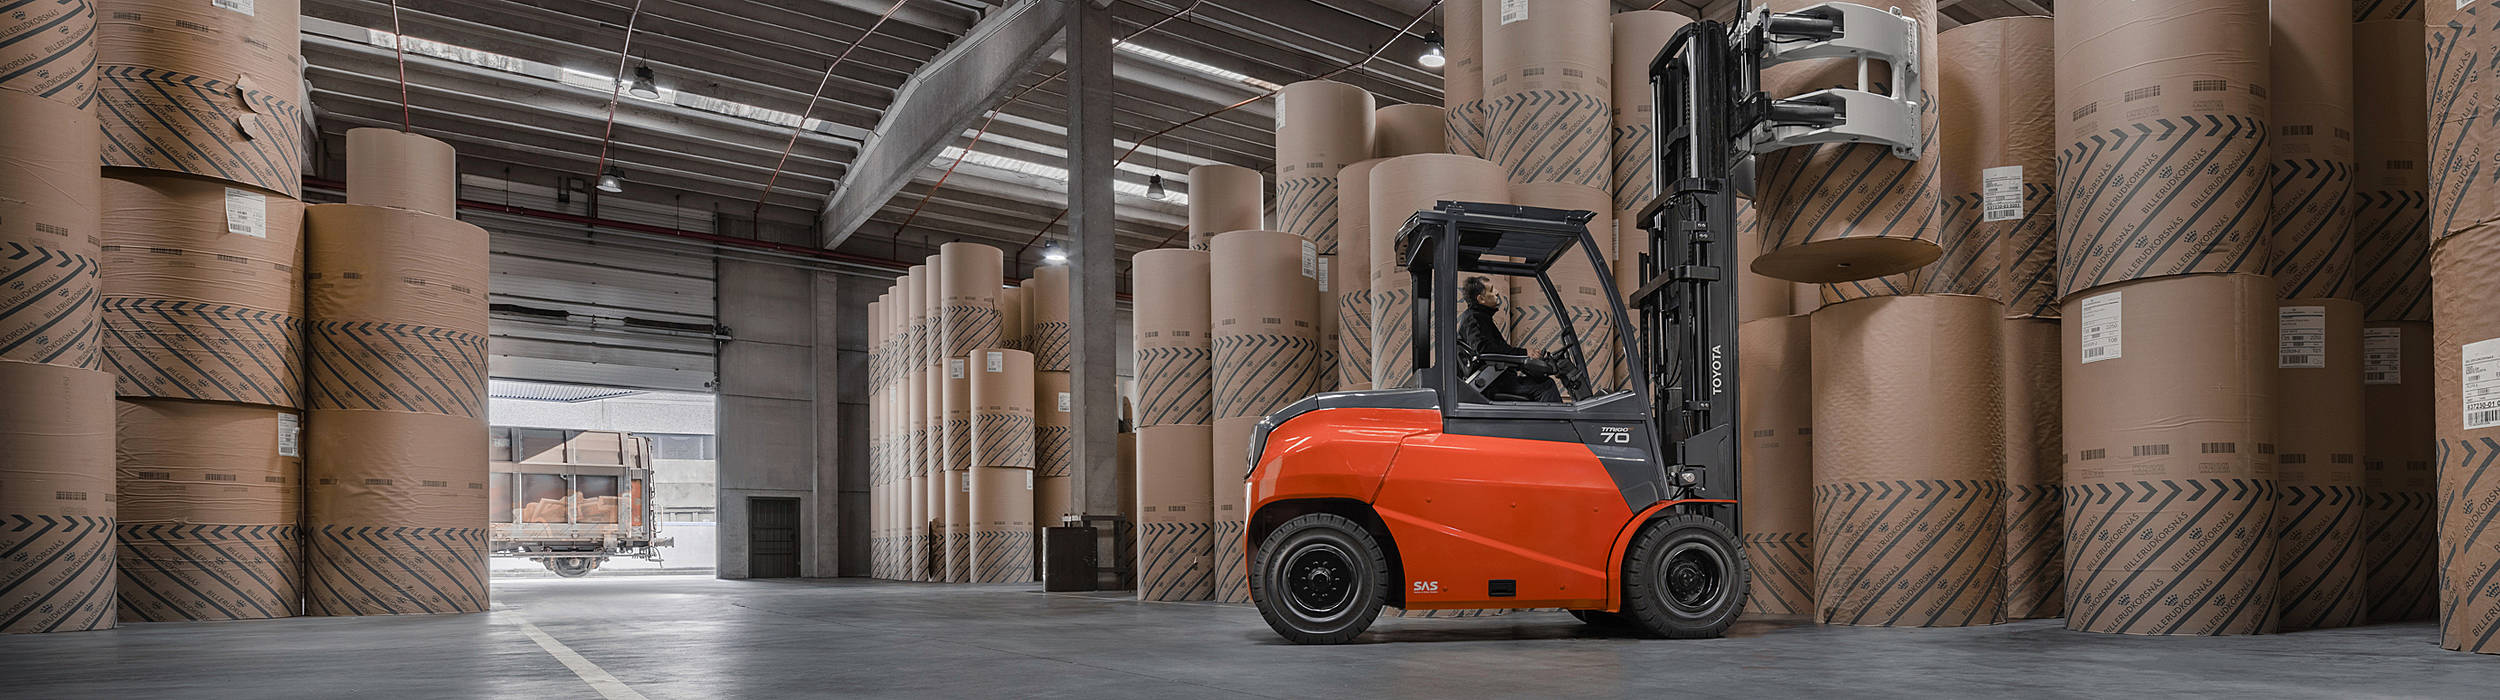 The new Traigo 80 heavy-duty electric counterbalance forklift excels in performance, manoeuvrability and efficiency.